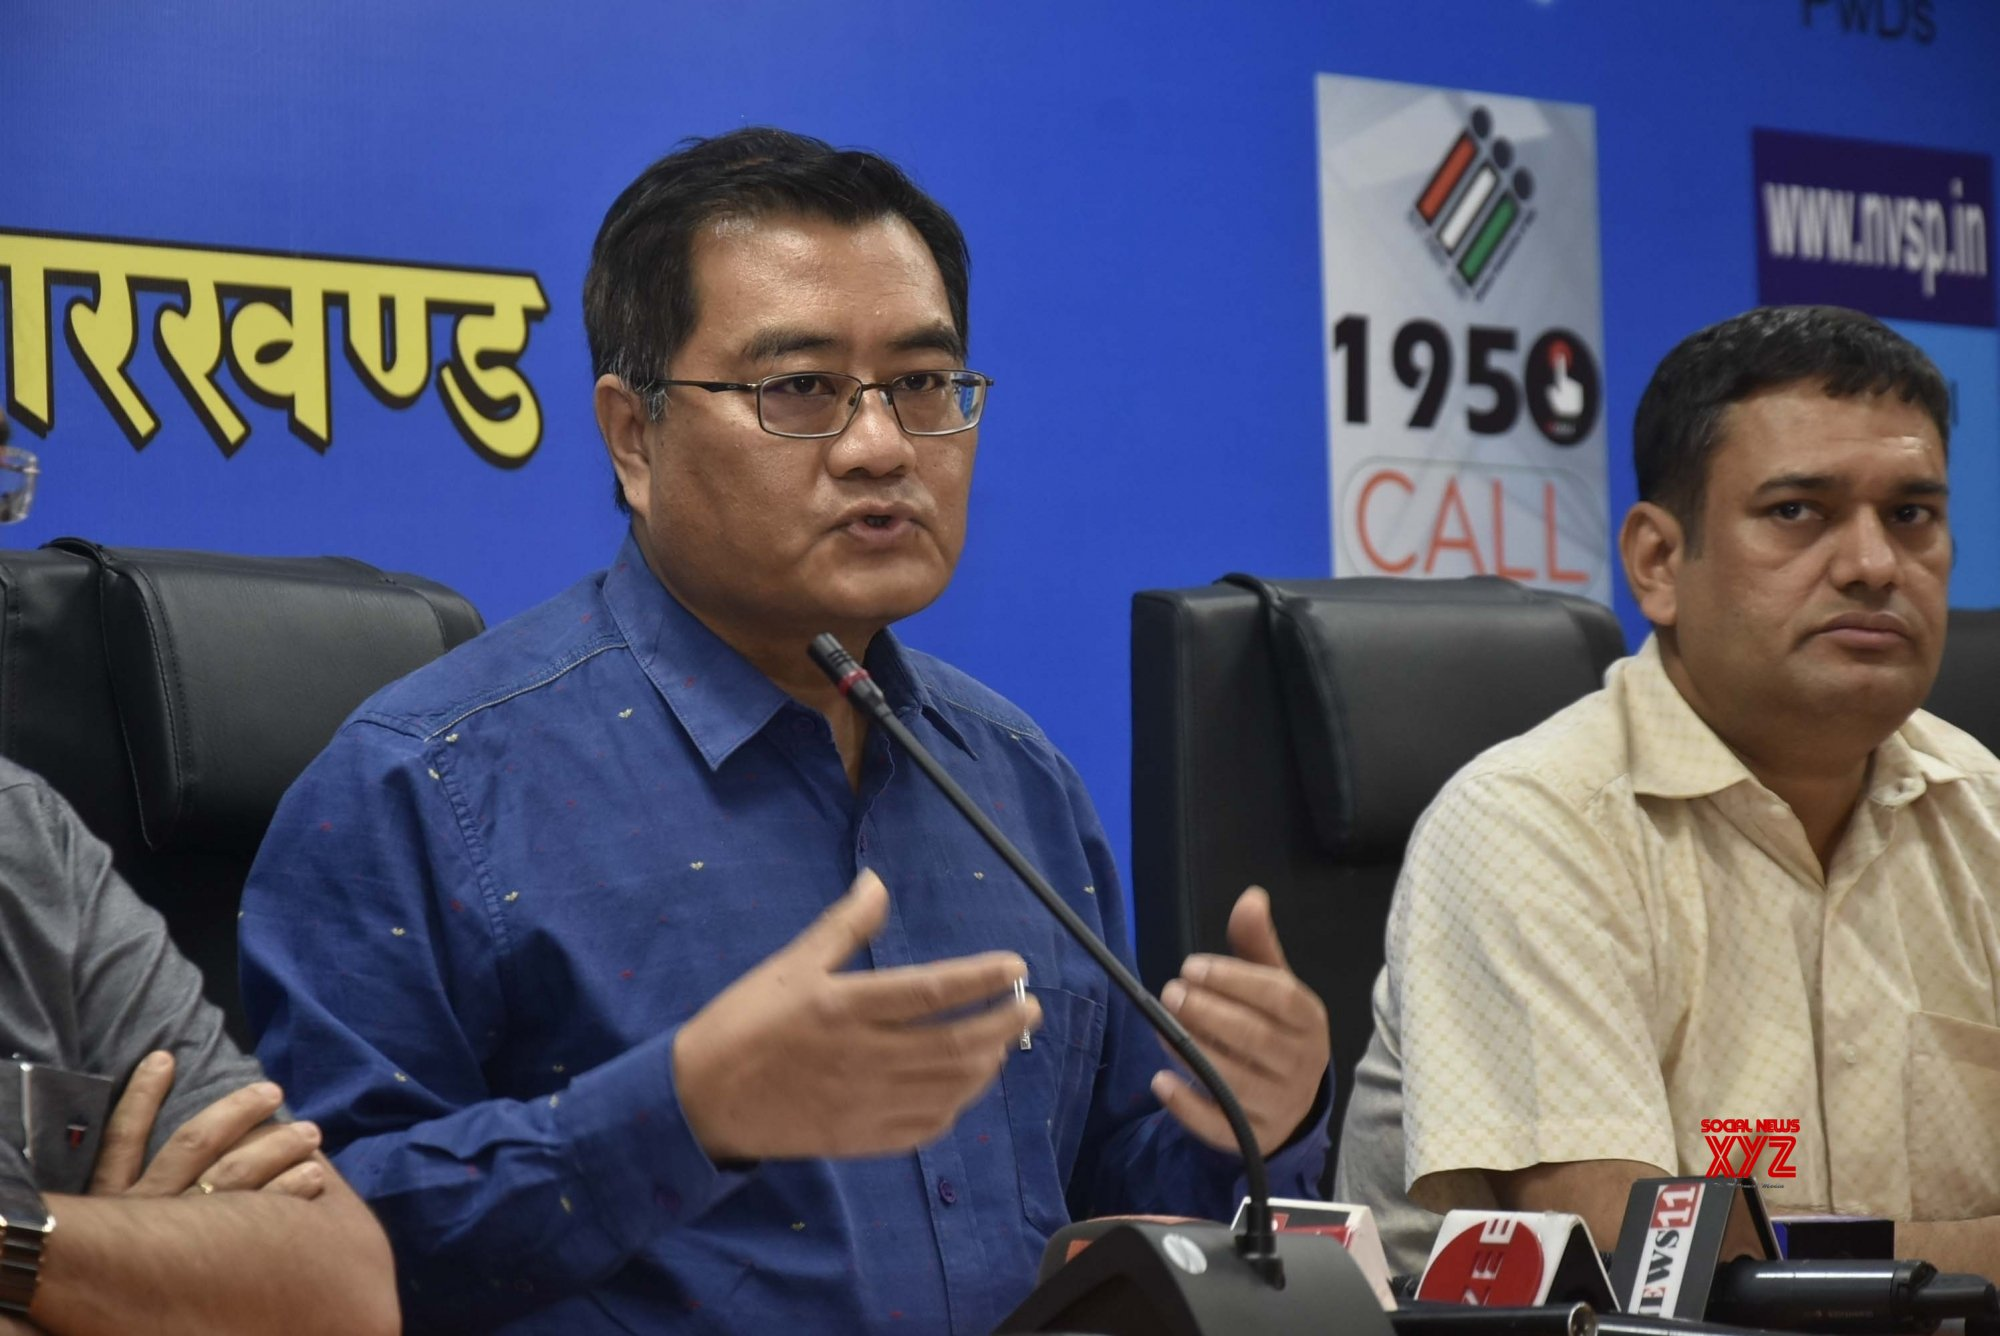 Ranchi: Jharkhand Chief Electoral Officer's press conference #Gallery